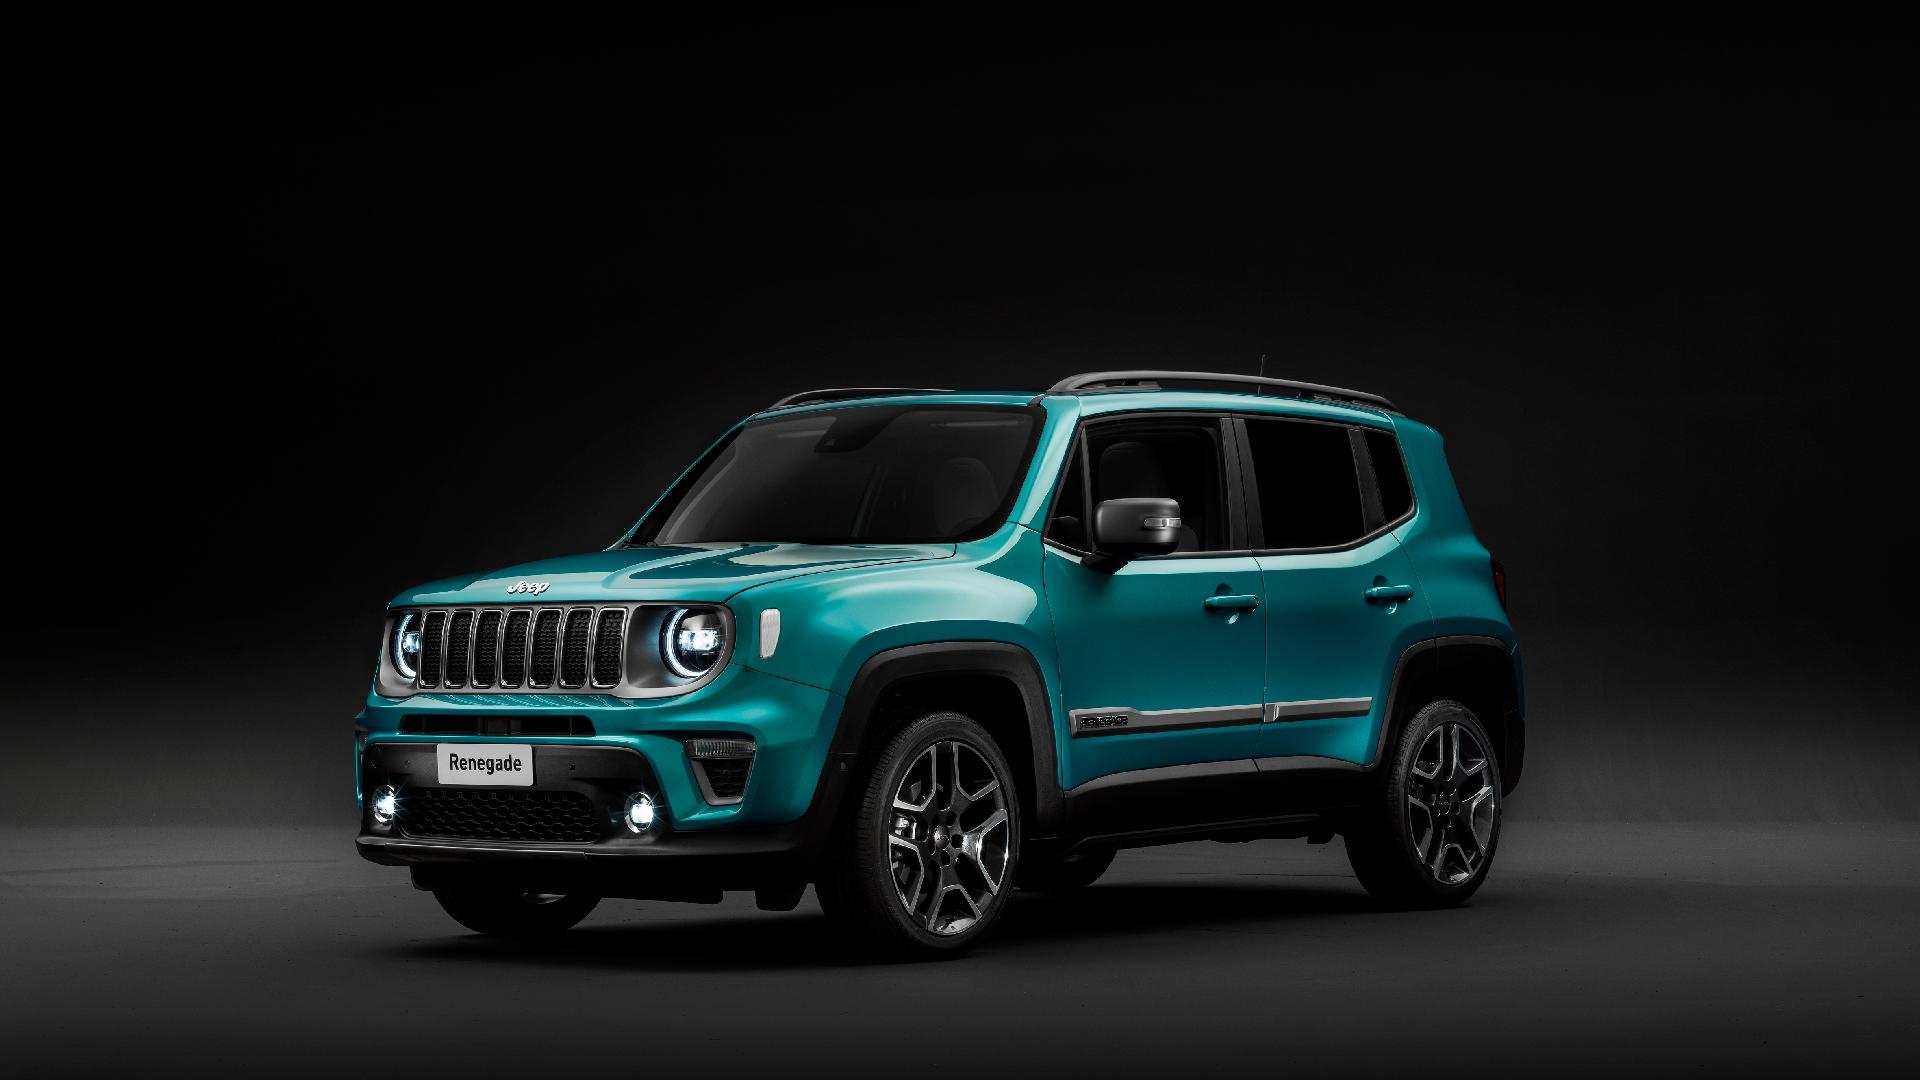 JEEP Renegade 1.3 GSE T4 Turbo Limited FWD S&S aut